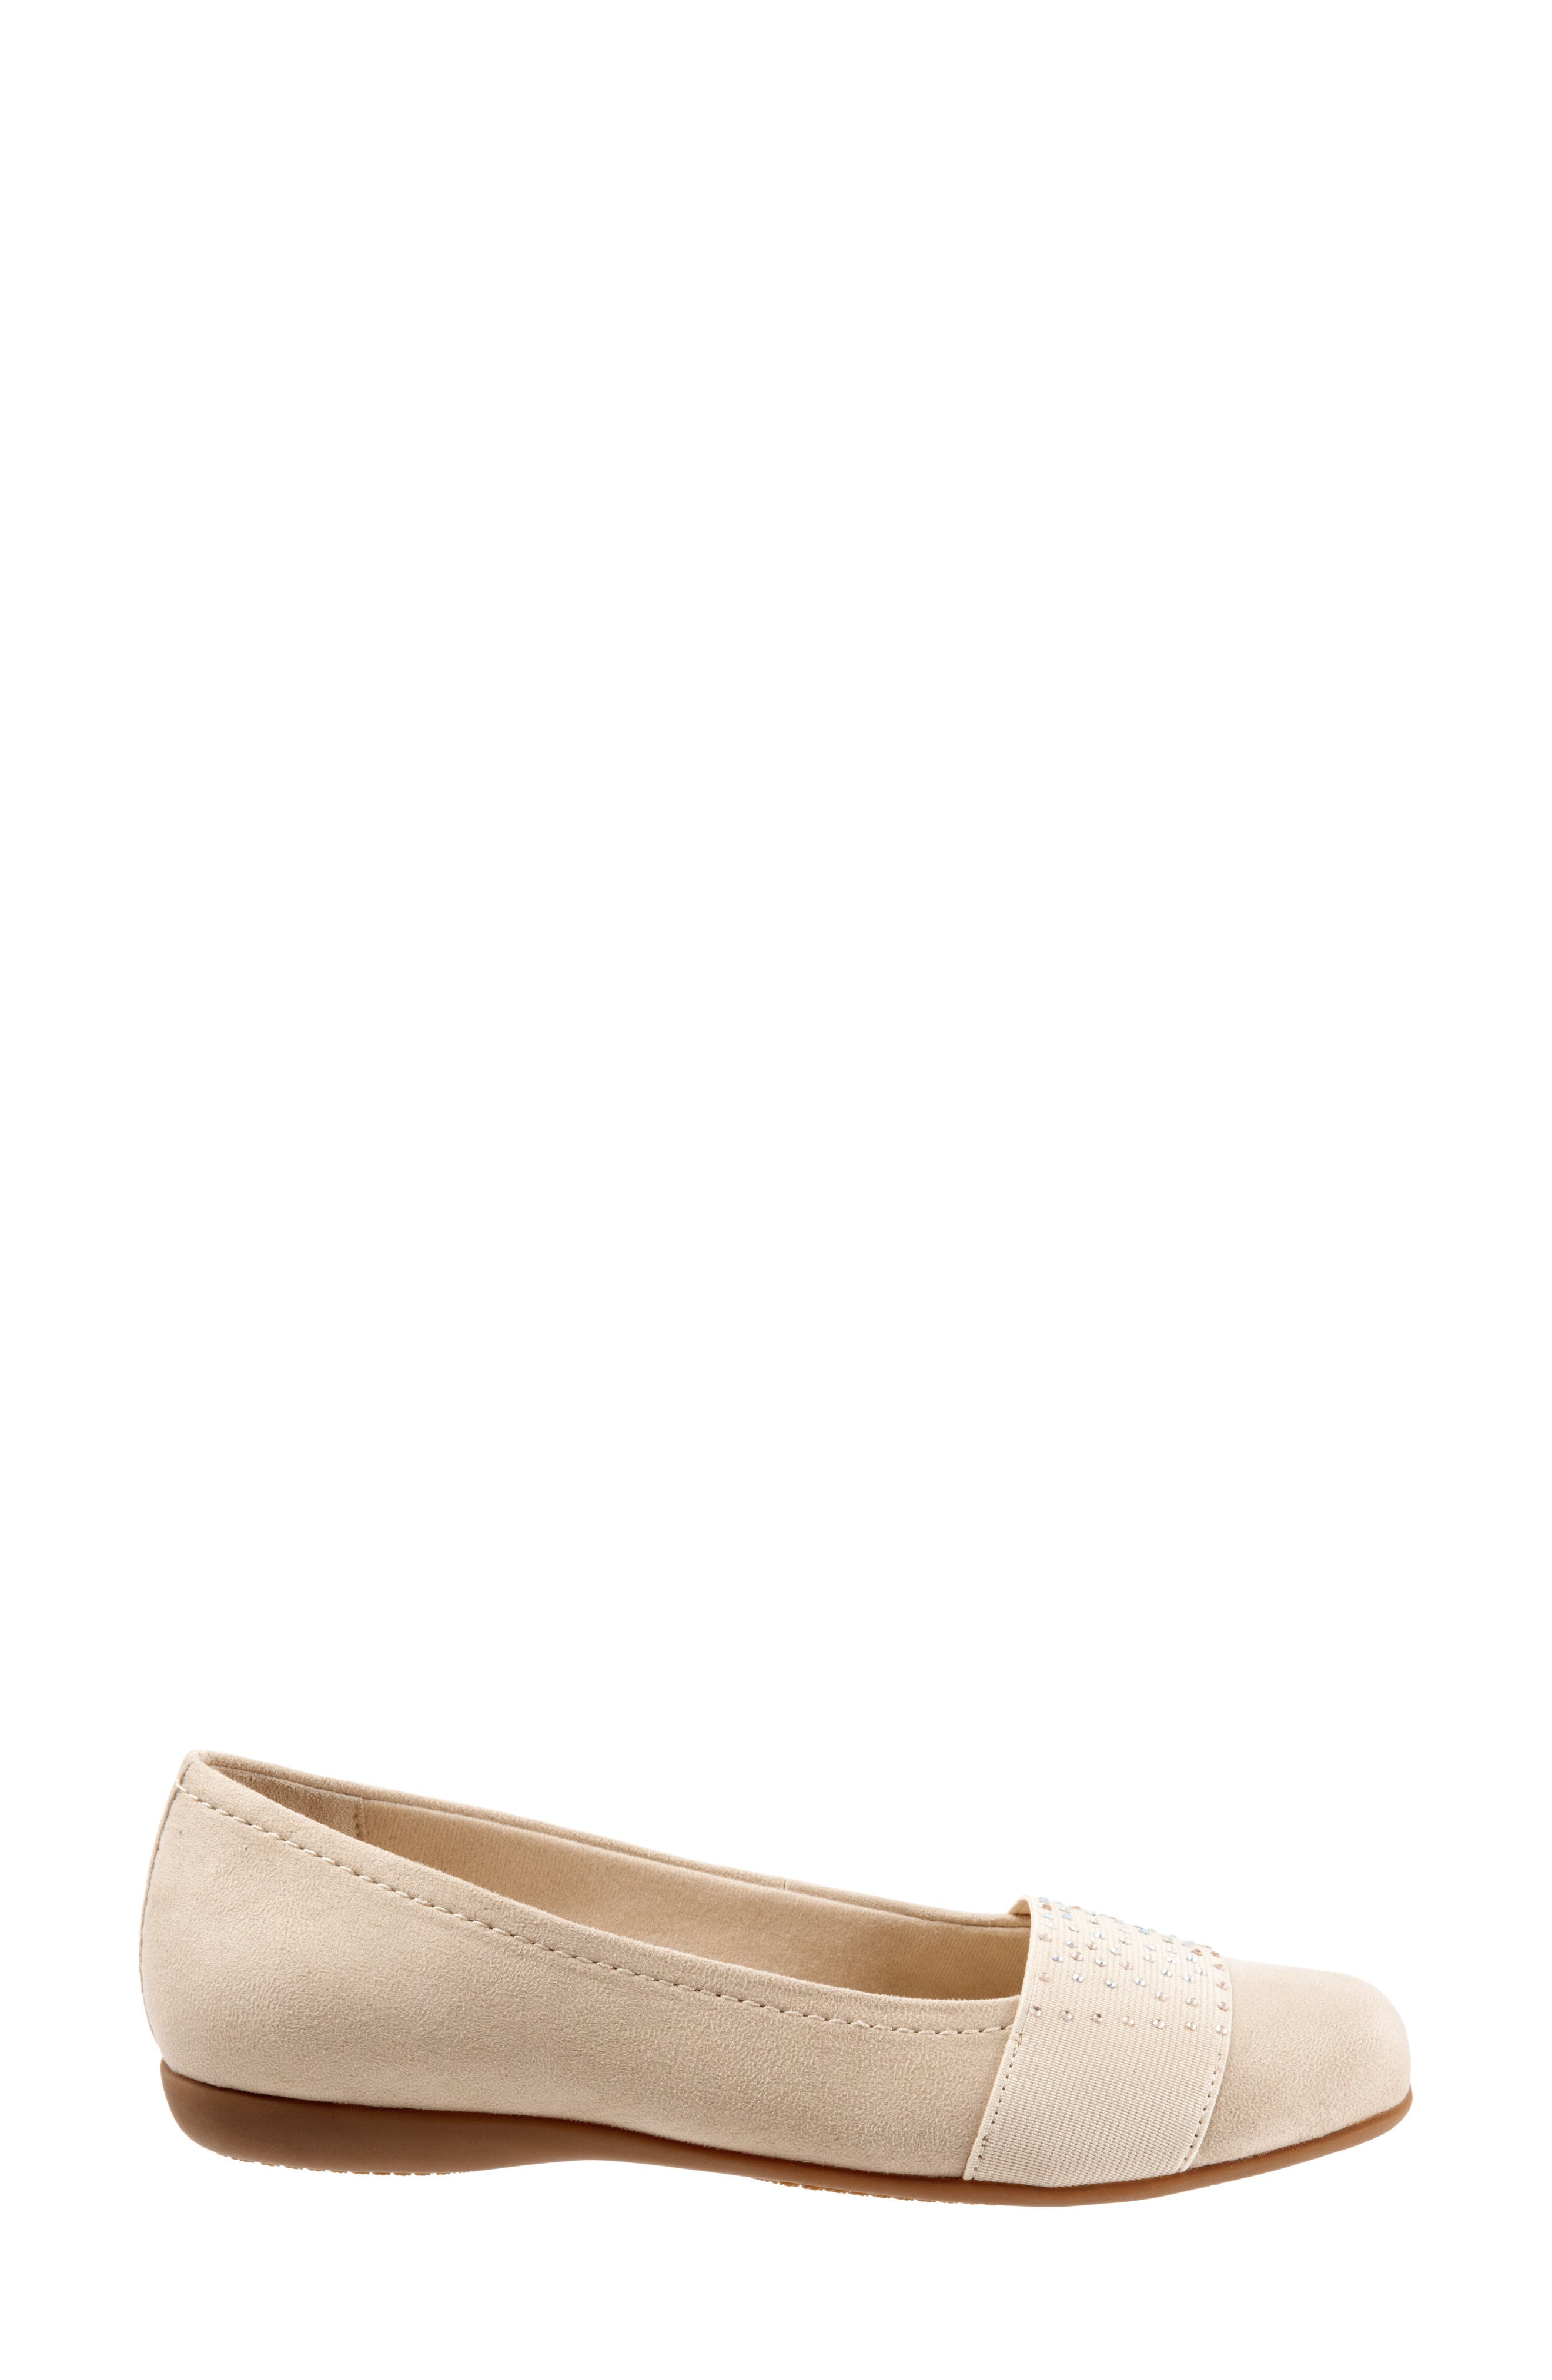 Samantha Flat,                             Alternate thumbnail 3, color,                             Nude Suede